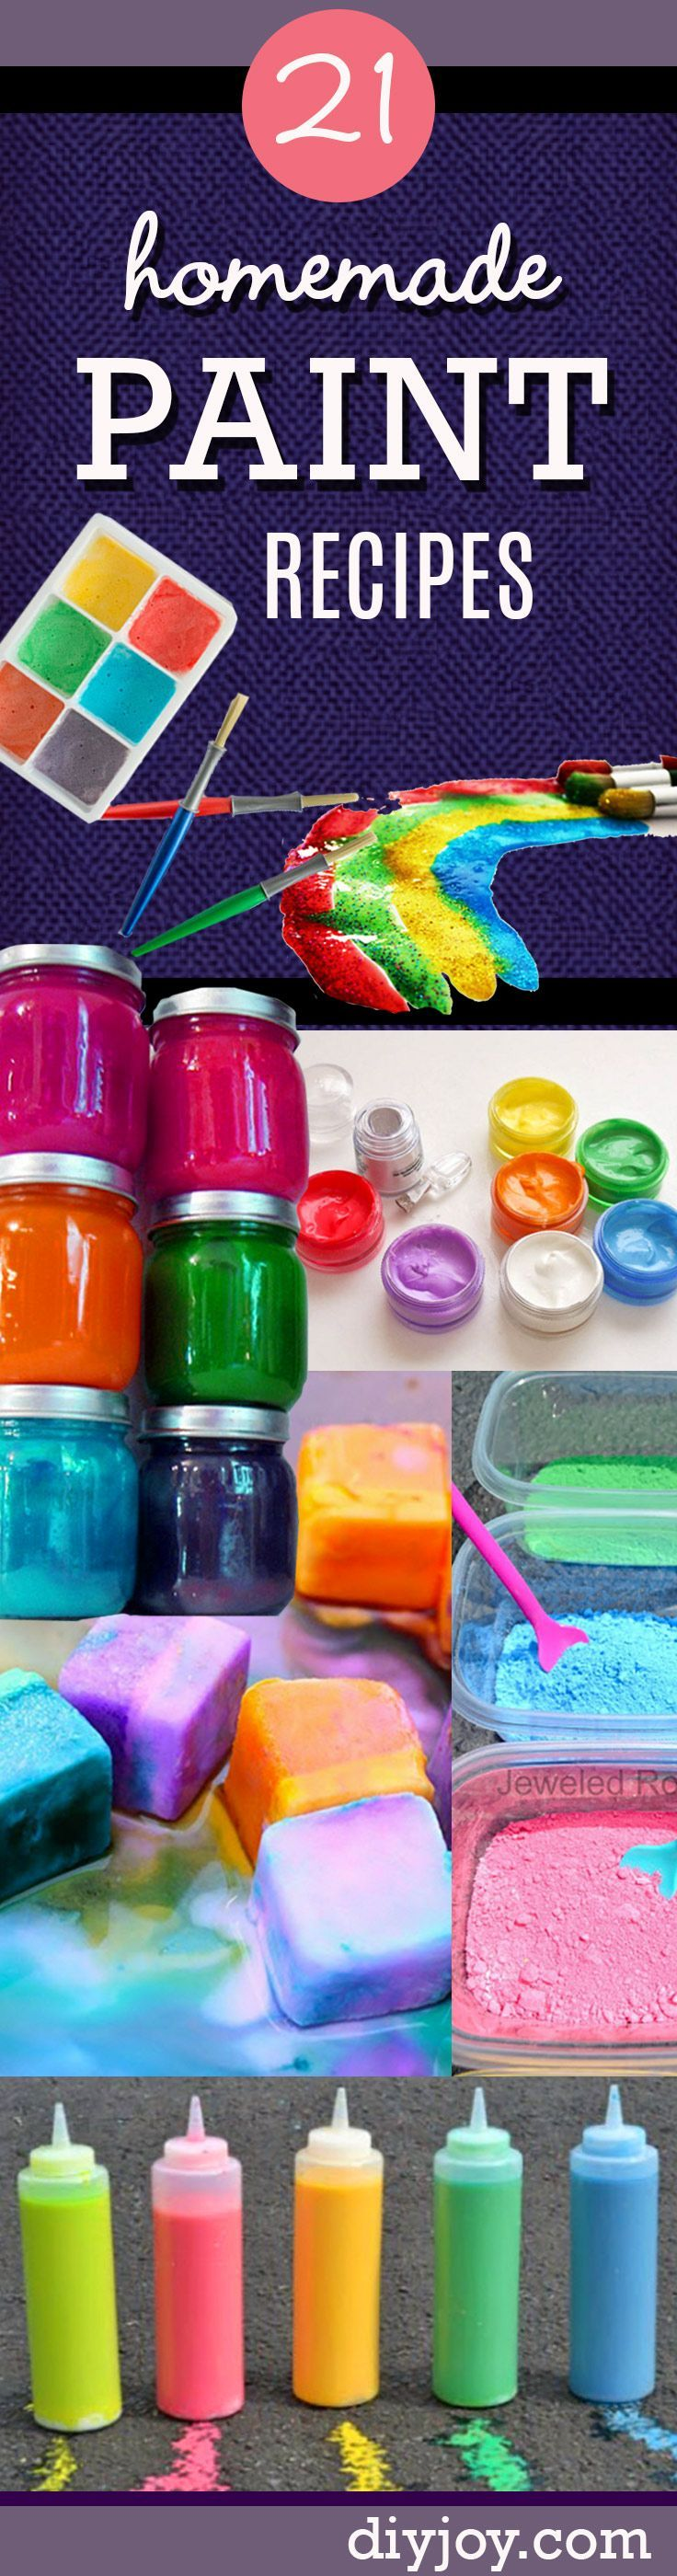 Homemade Crafts for Kids - Fun DIY Paint Recipes Your Kids Will Love